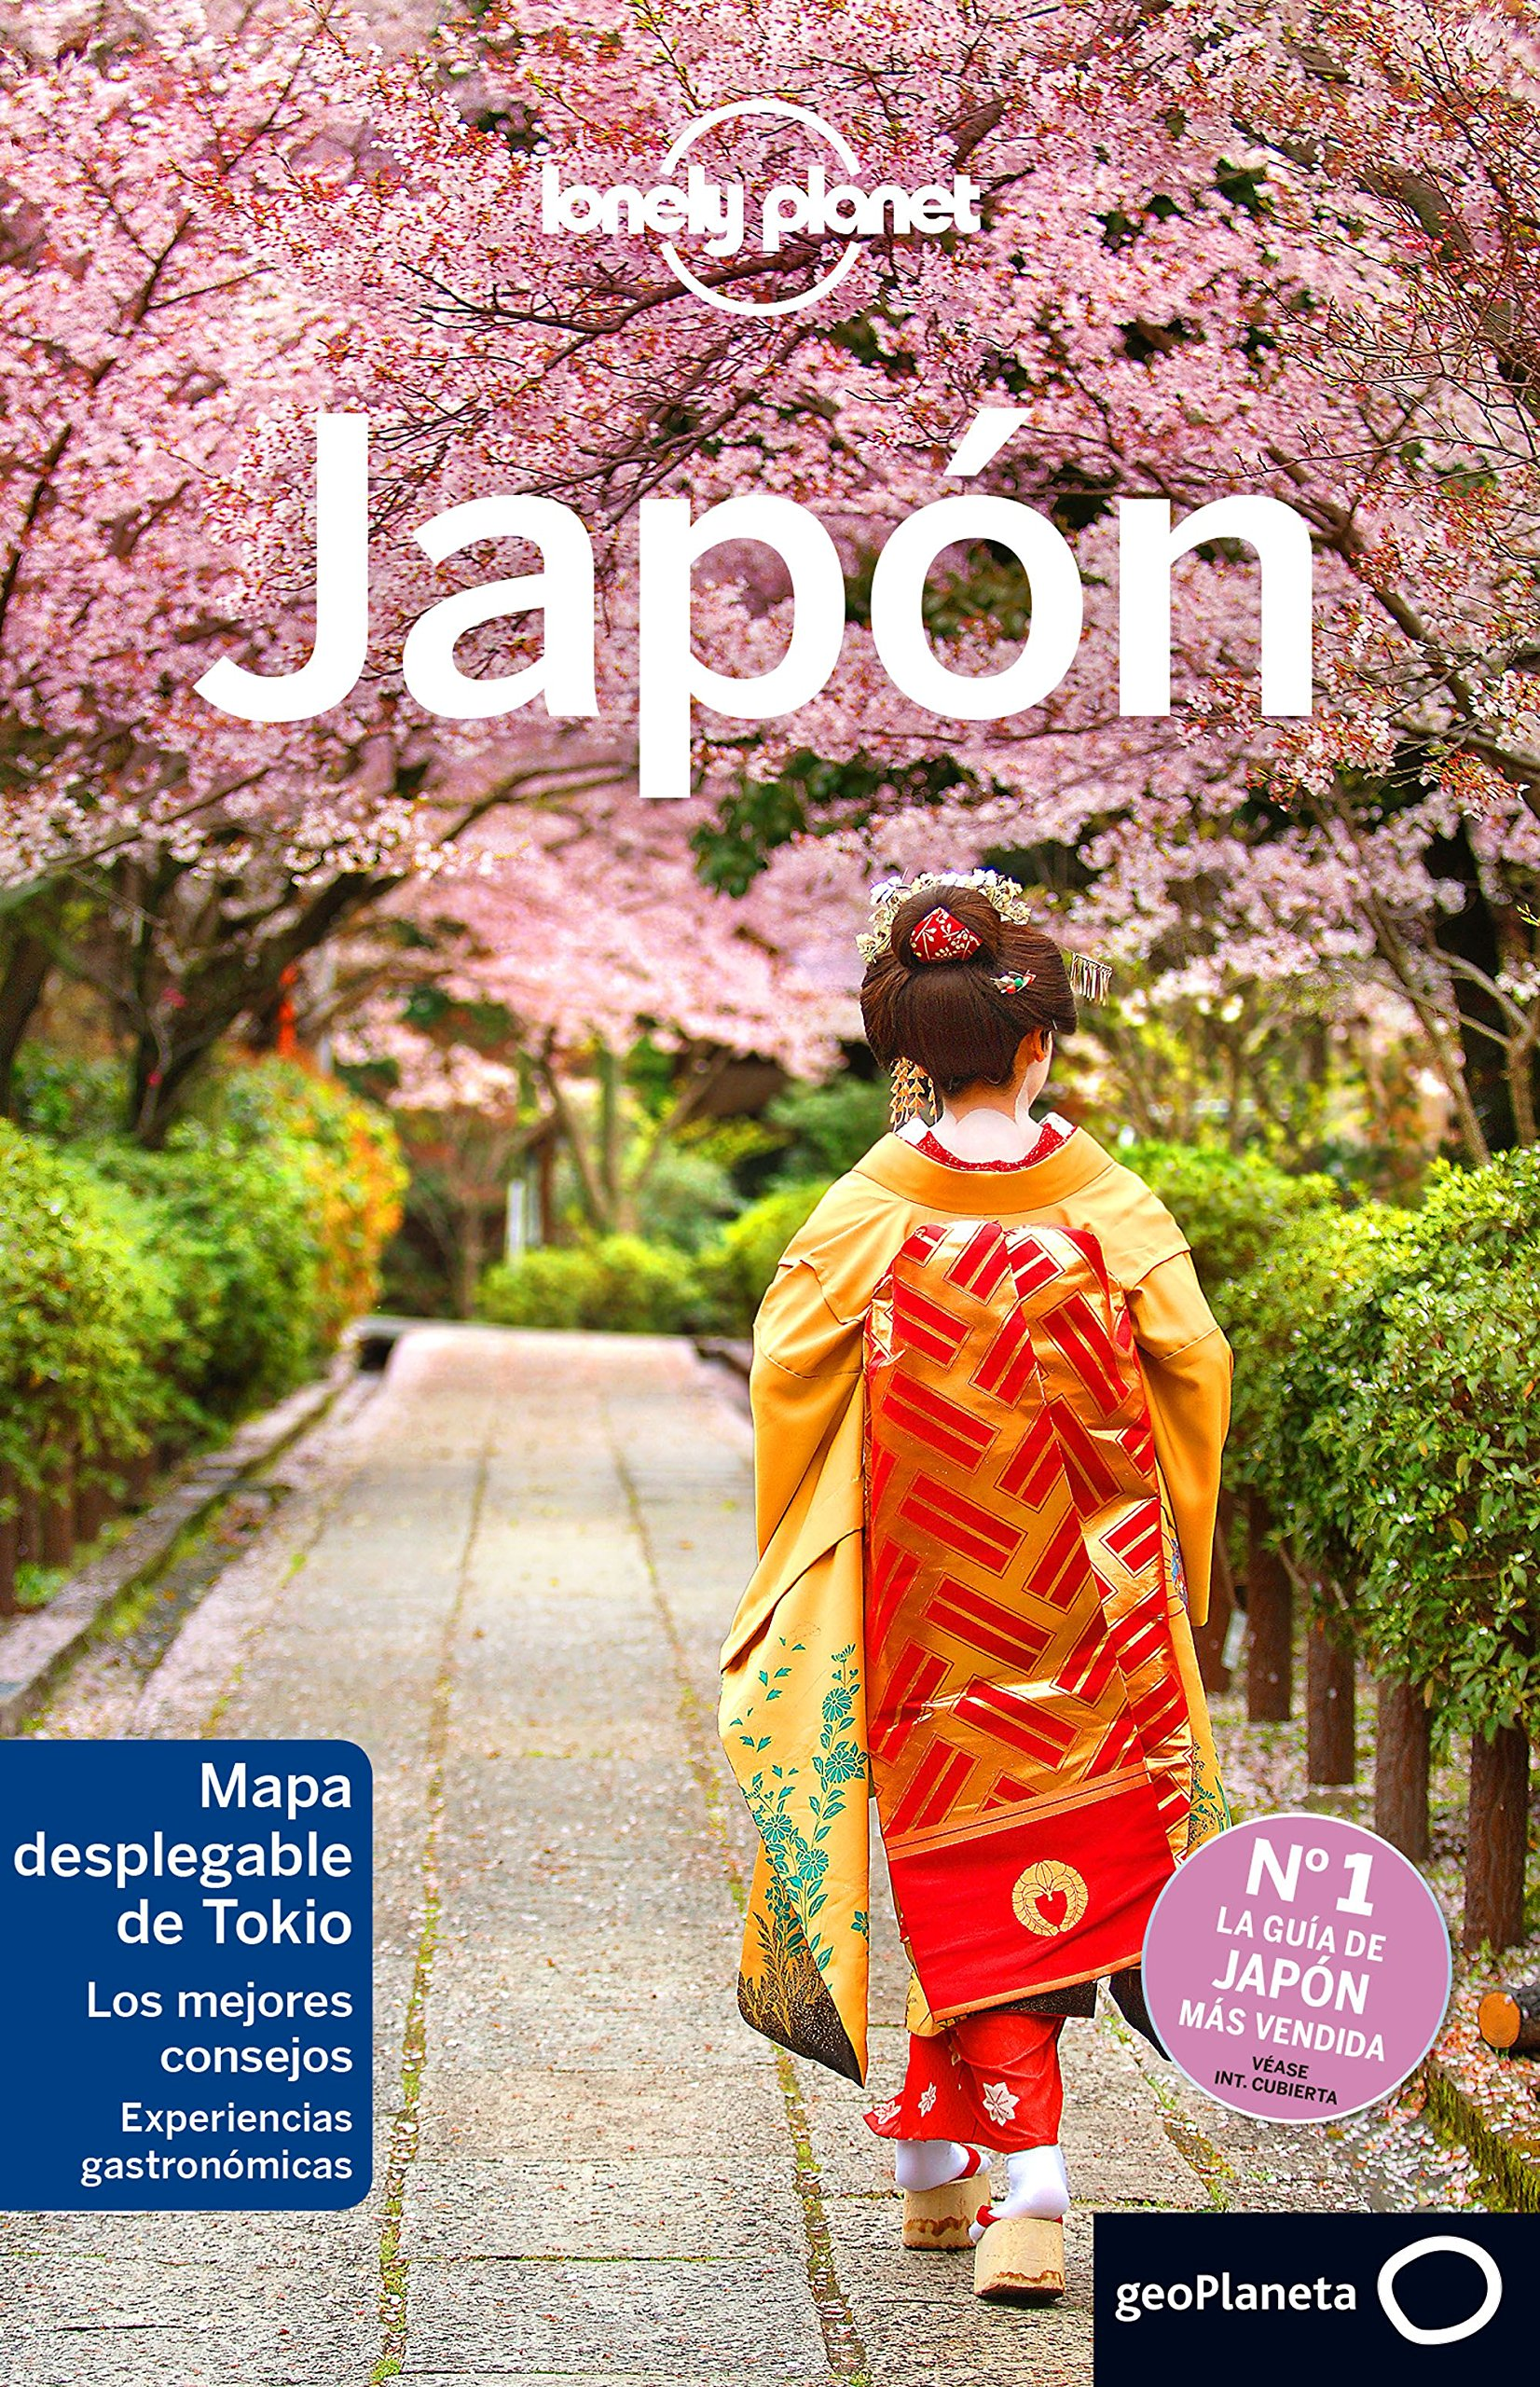 Japón 5: 1 Guías de País Lonely Planet Idioma Inglés: Amazon.es: Rowthorn, Chris, Tang, Phillip, Yanagihara, Wendy, Bartlett, Ray, Walker, Benedict, Richmond, Simon, Crawford, Laura, Milner, Rebecca, Bender, Andrew, Mclachlan, Craig, Delgado